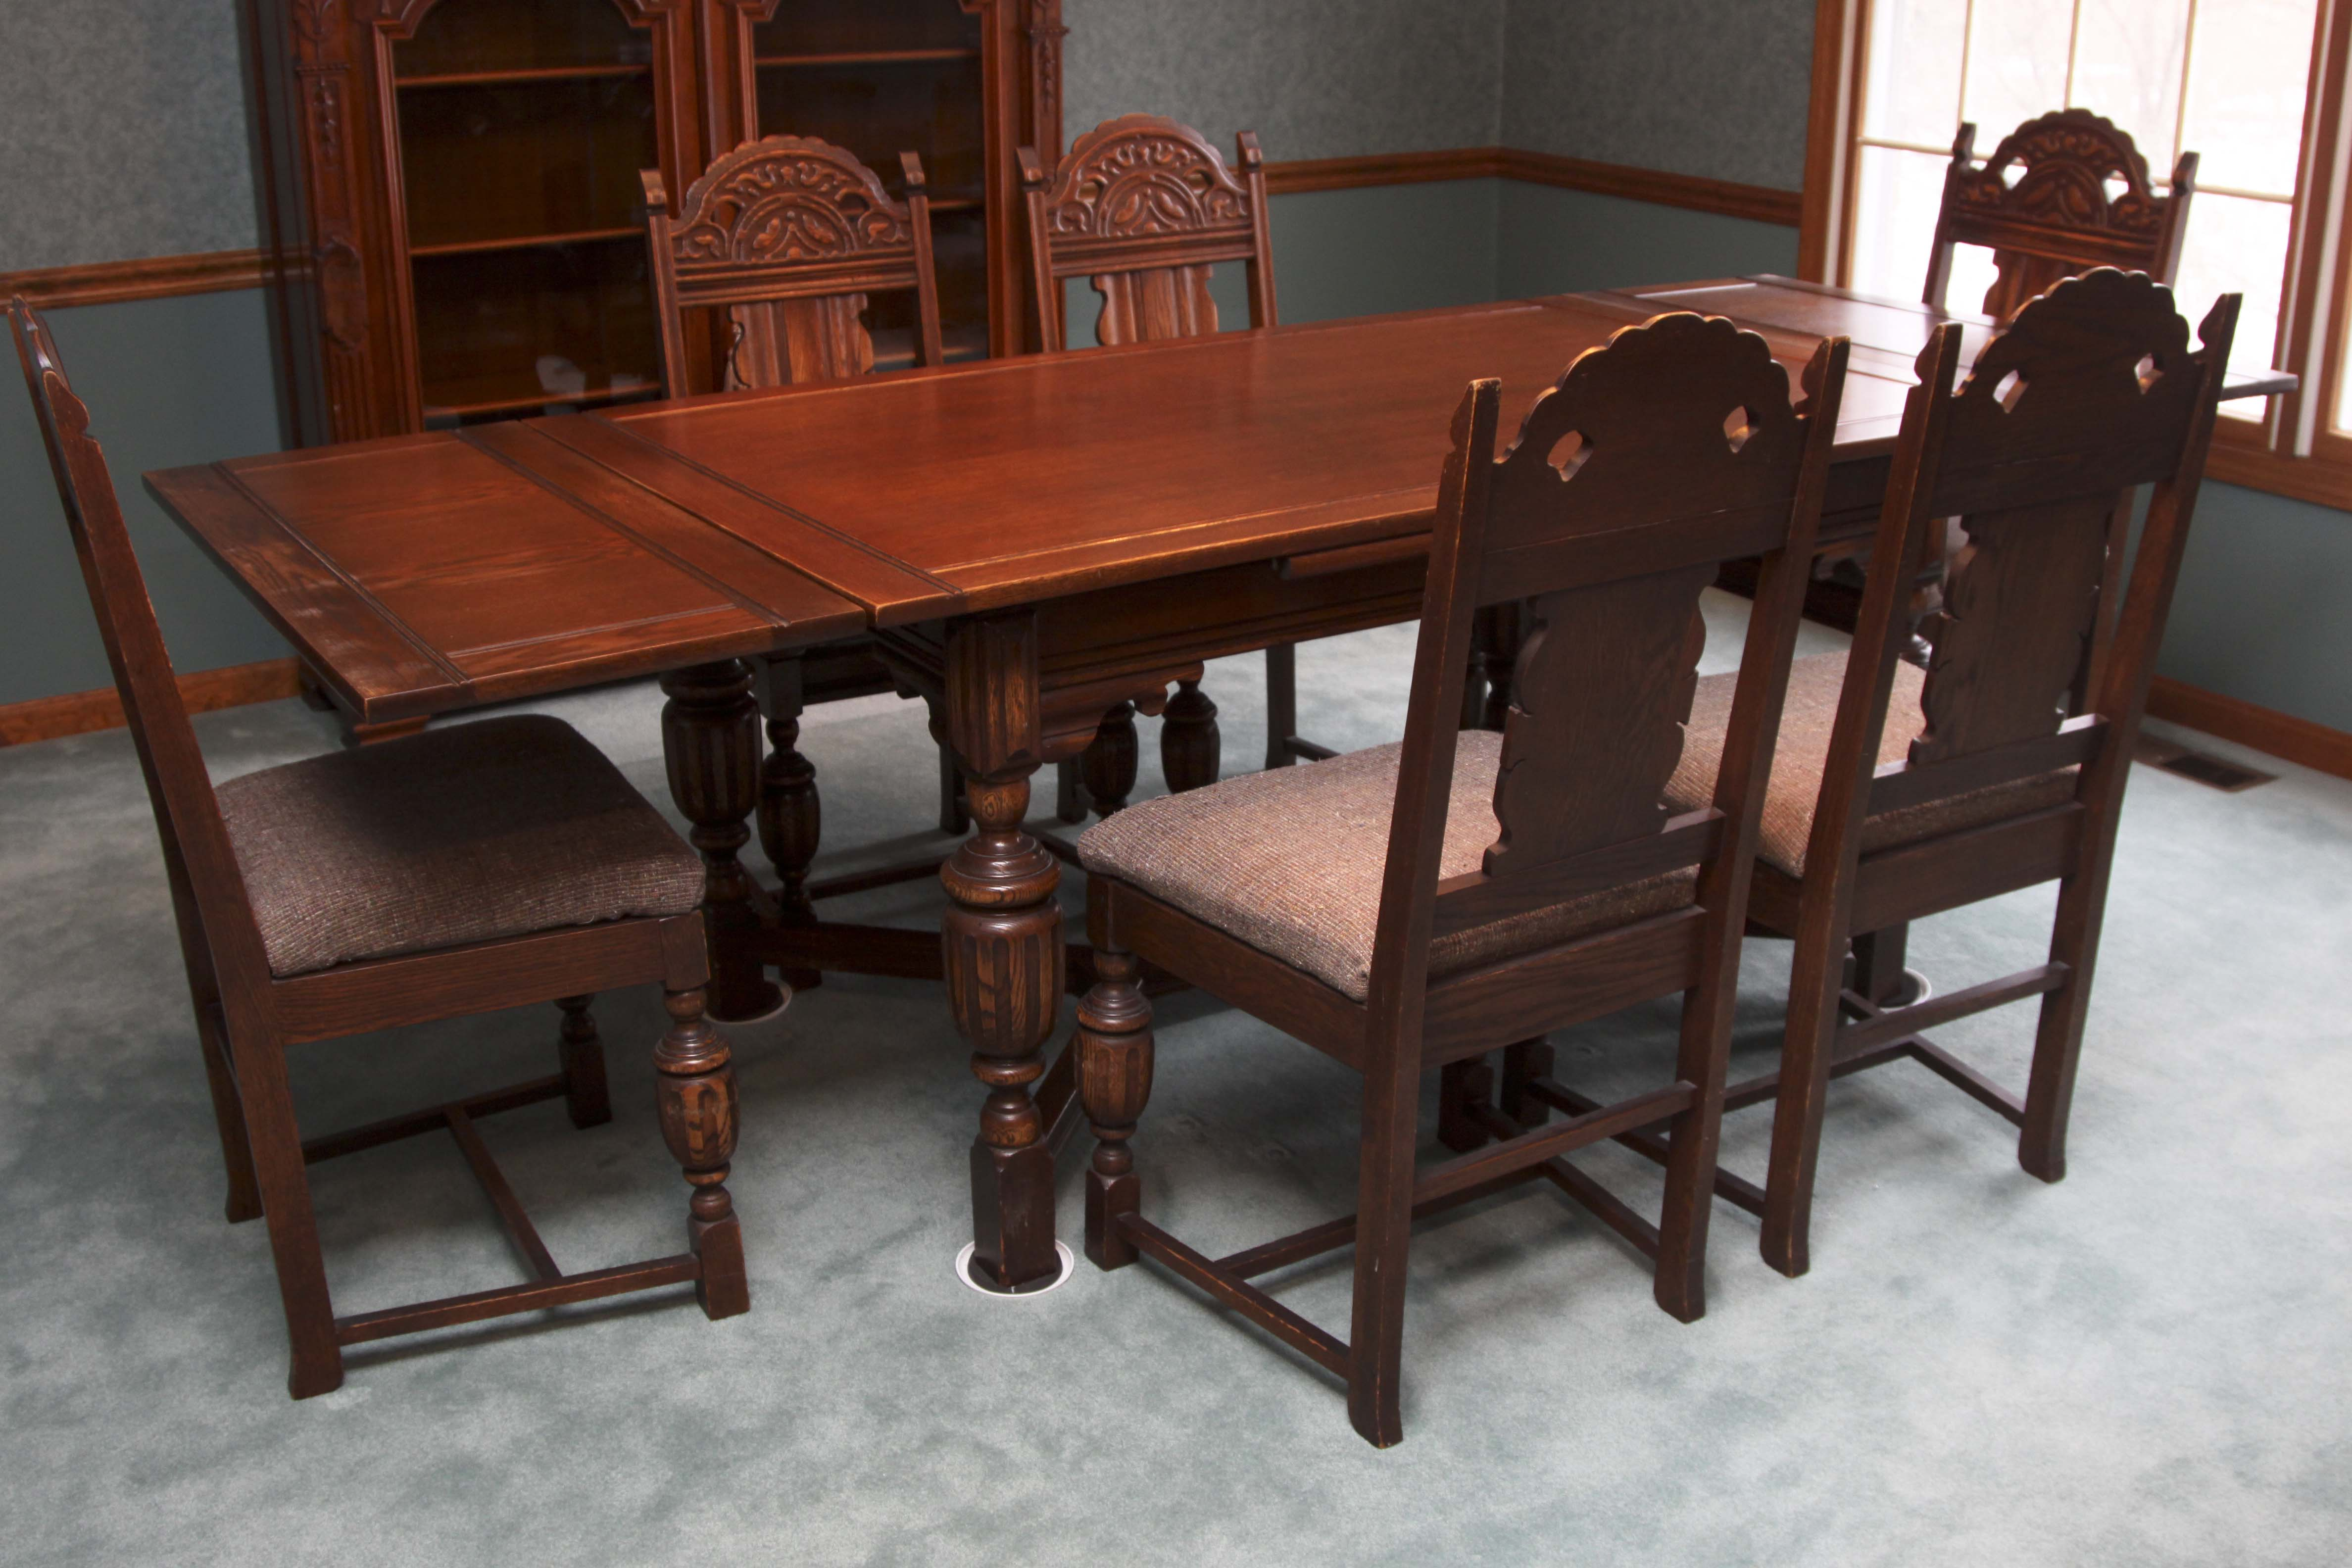 Jacobean Revival Draw Leaf Dining Table and Six ChairsEBTH